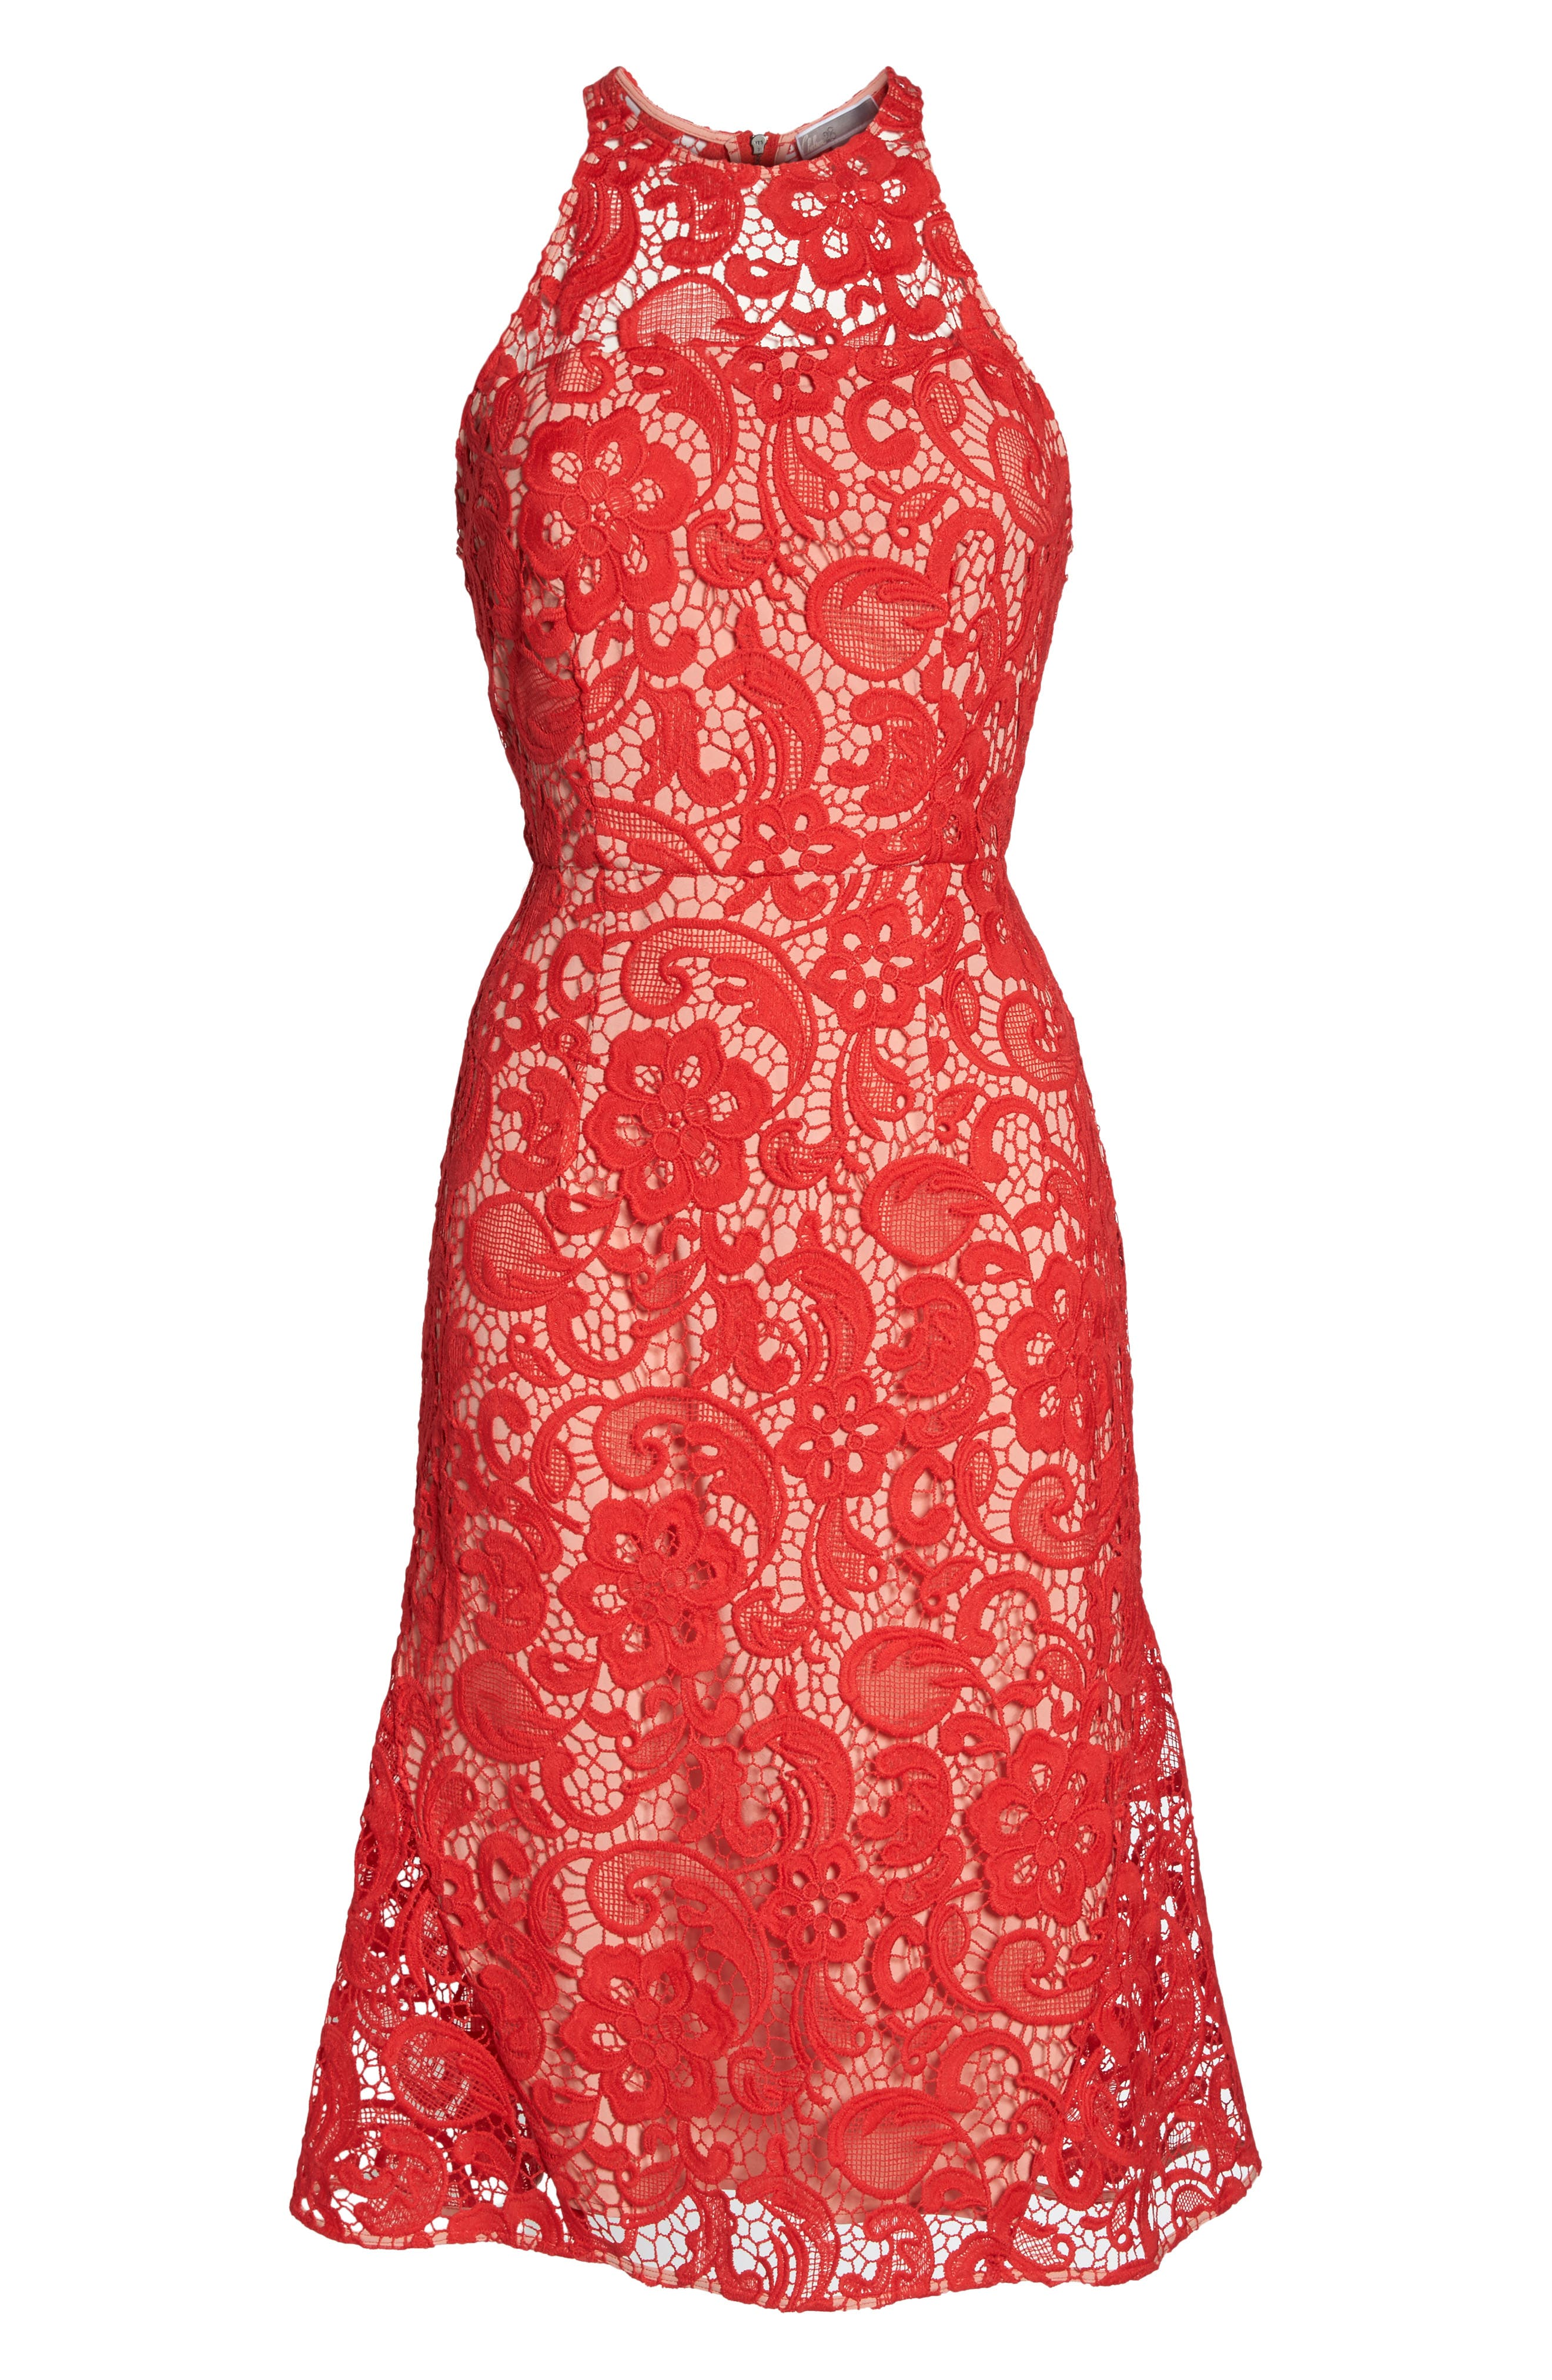 Carnation Lace Dress,                             Alternate thumbnail 6, color,                             Red Fiery